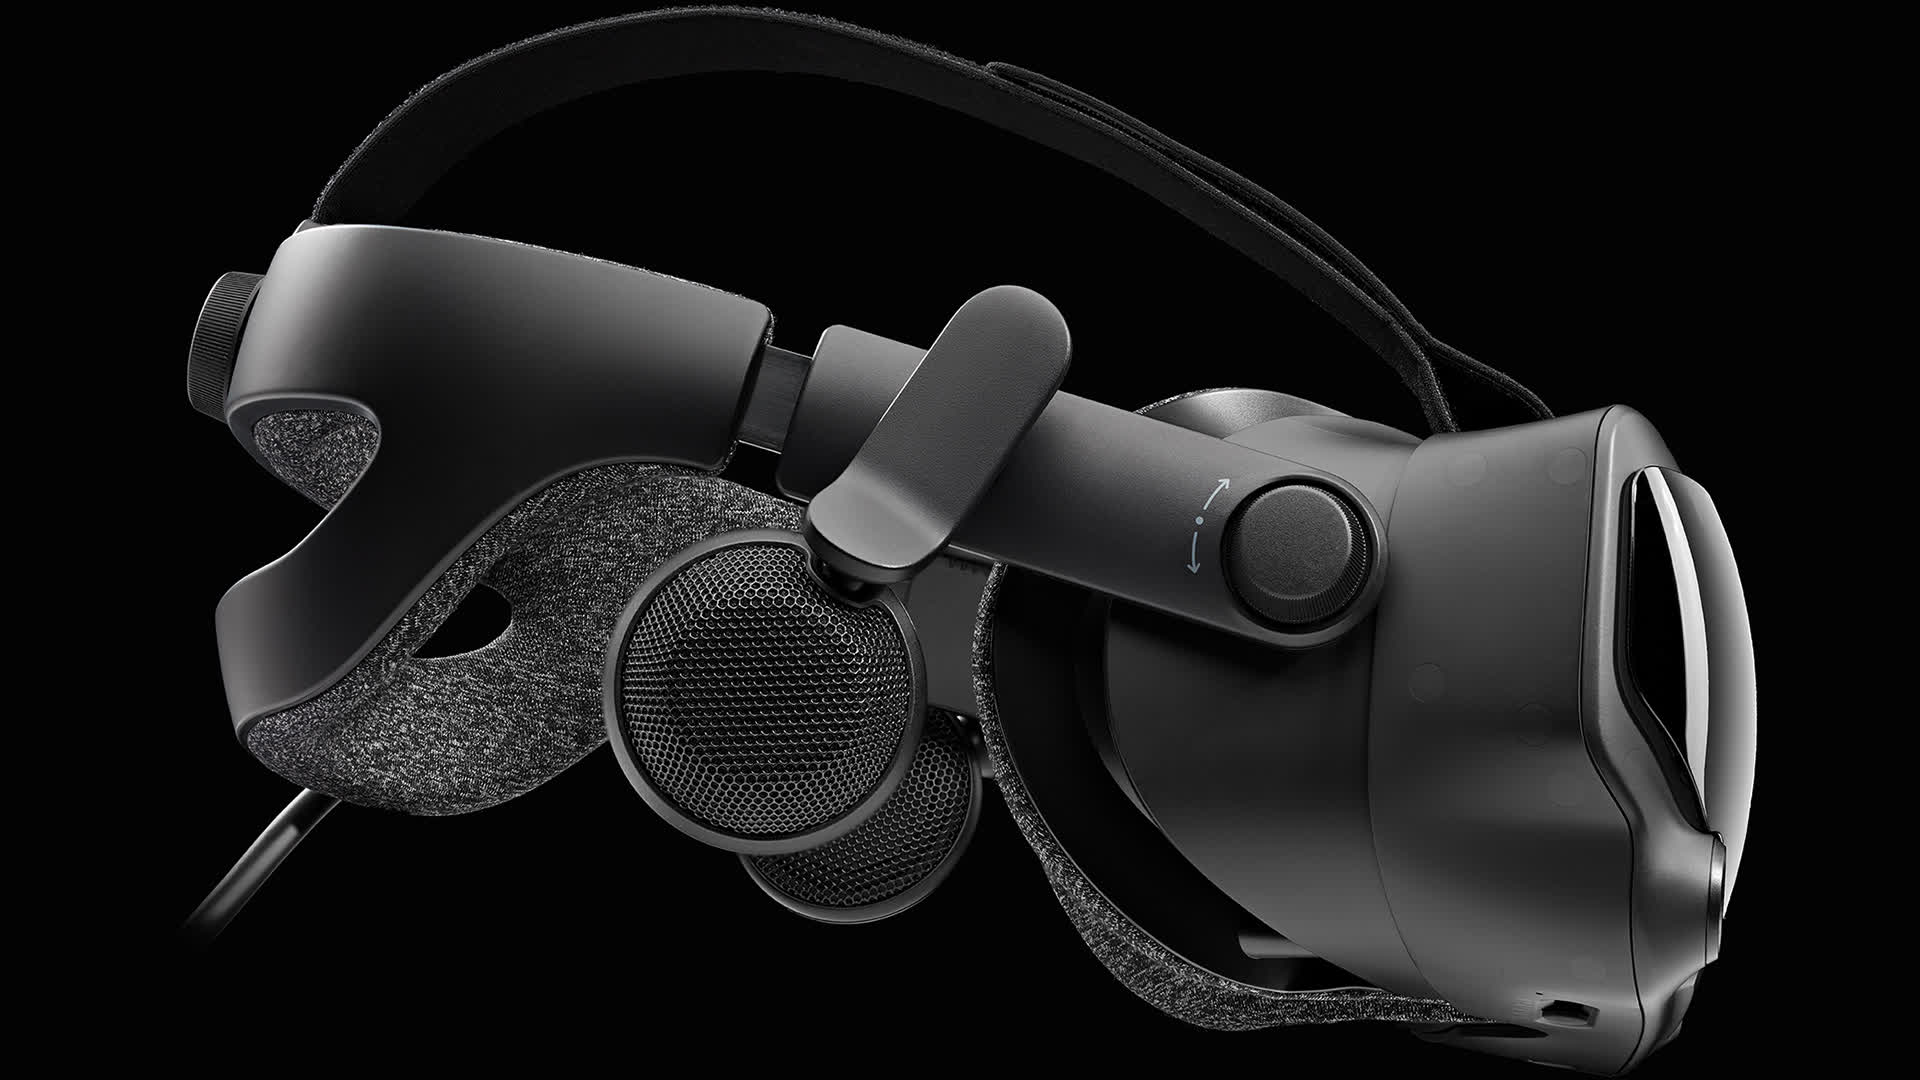 Valve looks to be working on a standalone VR headset